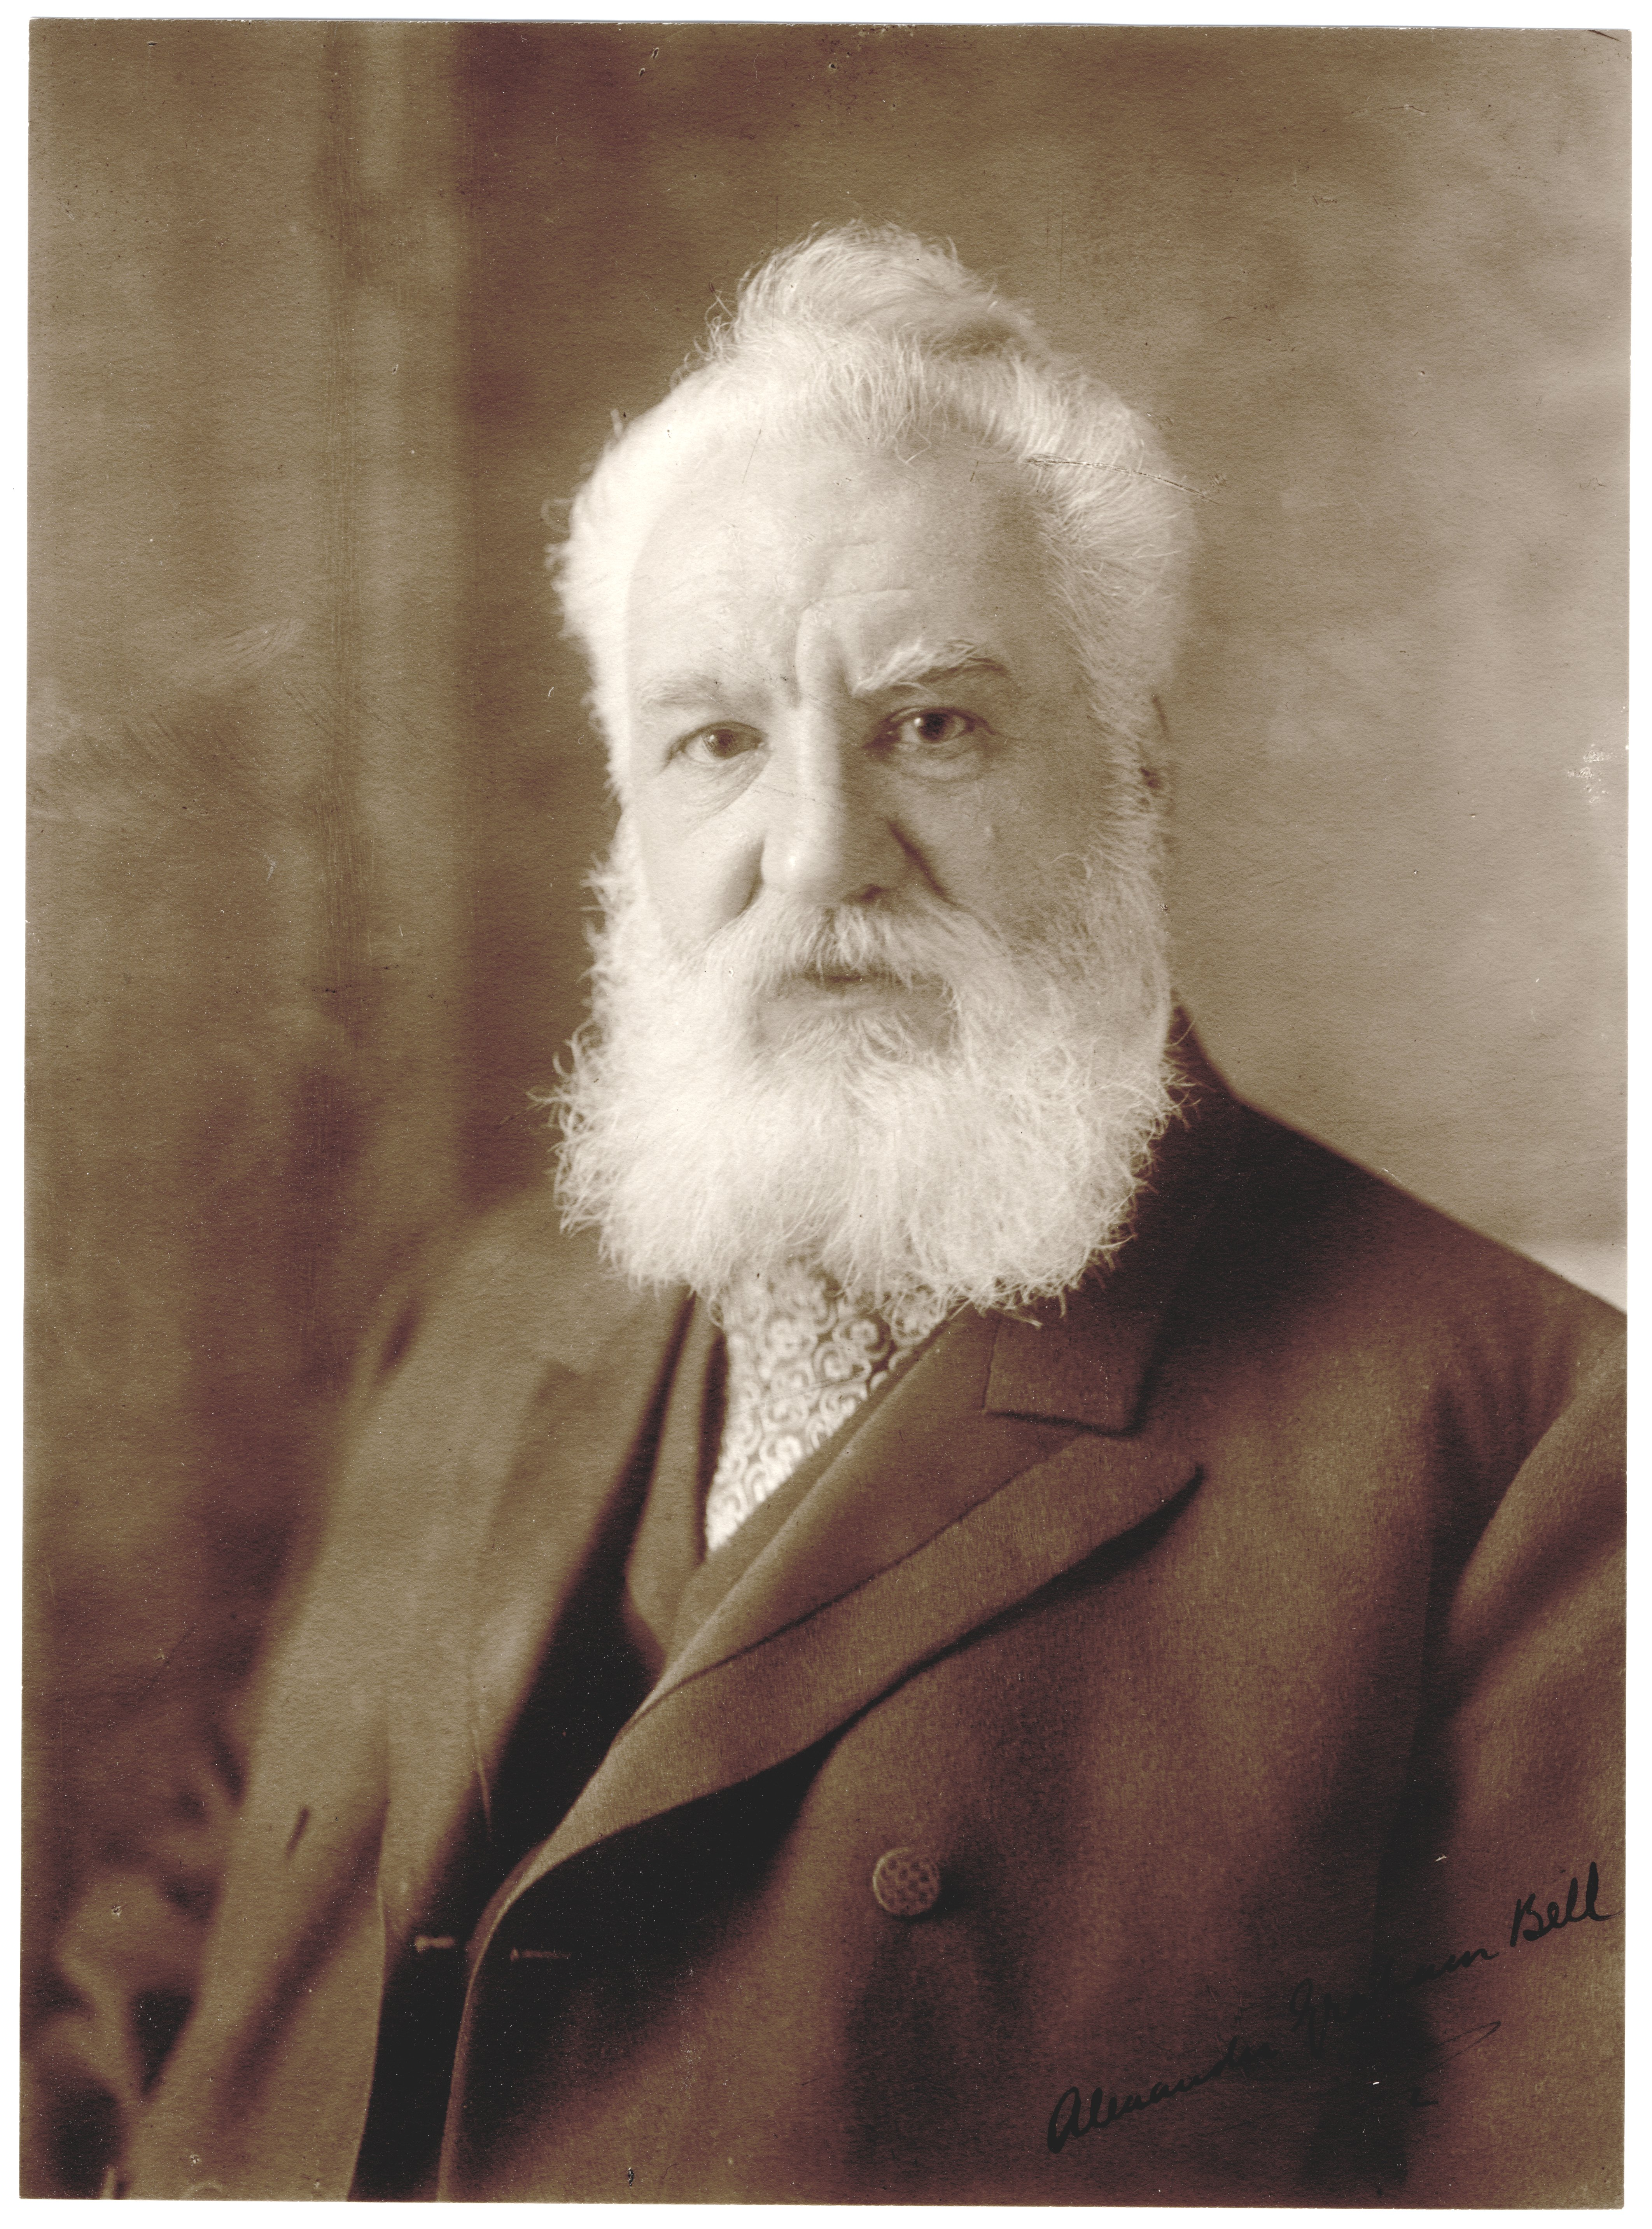 alexander graham bell biography Find great deals on ebay for biography of alexander graham bell shop with confidence.